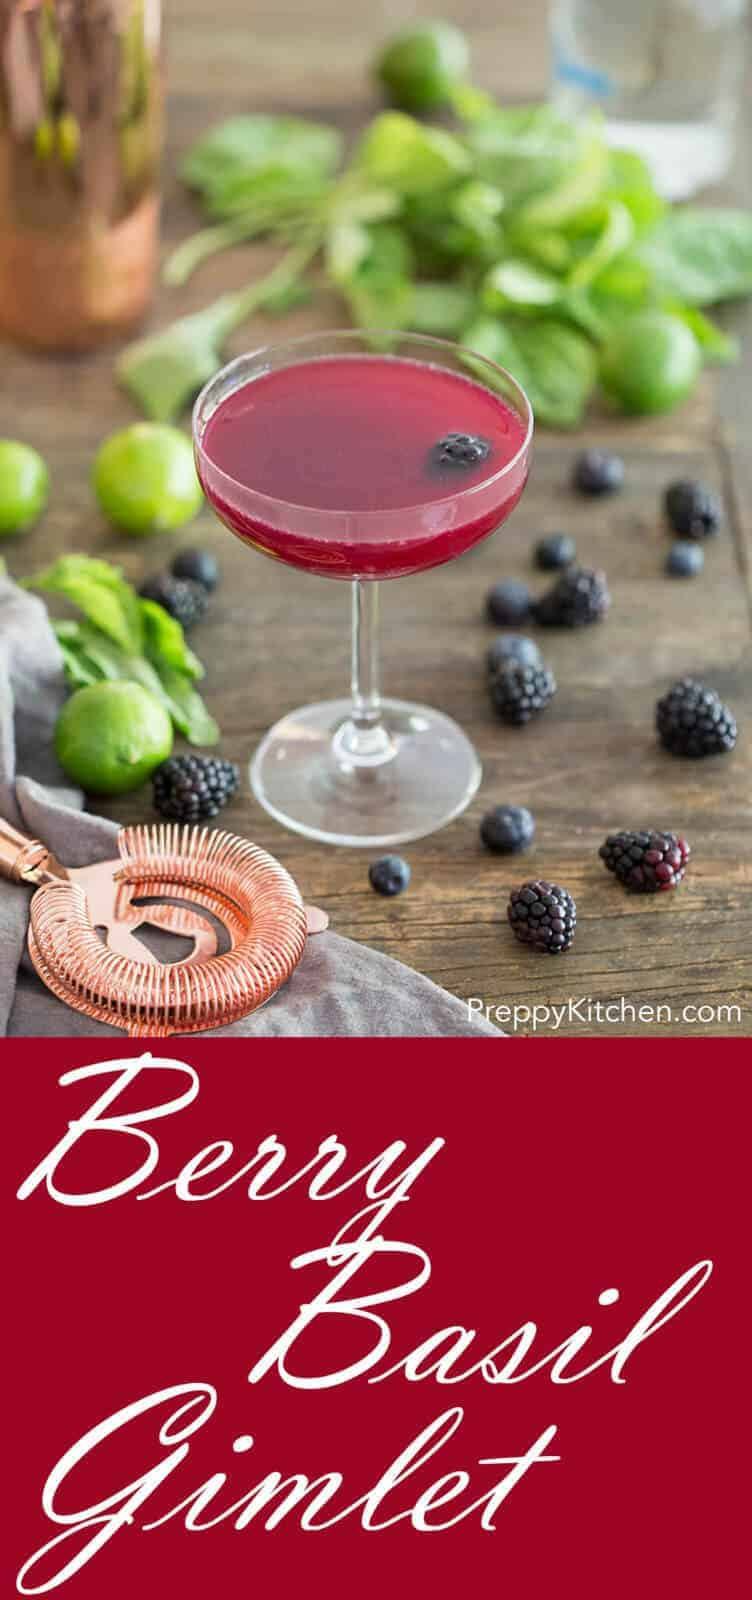 Berry simply syrup infused with fresh basil combines with key lime juice and vodka to make your new favorite cocktail.